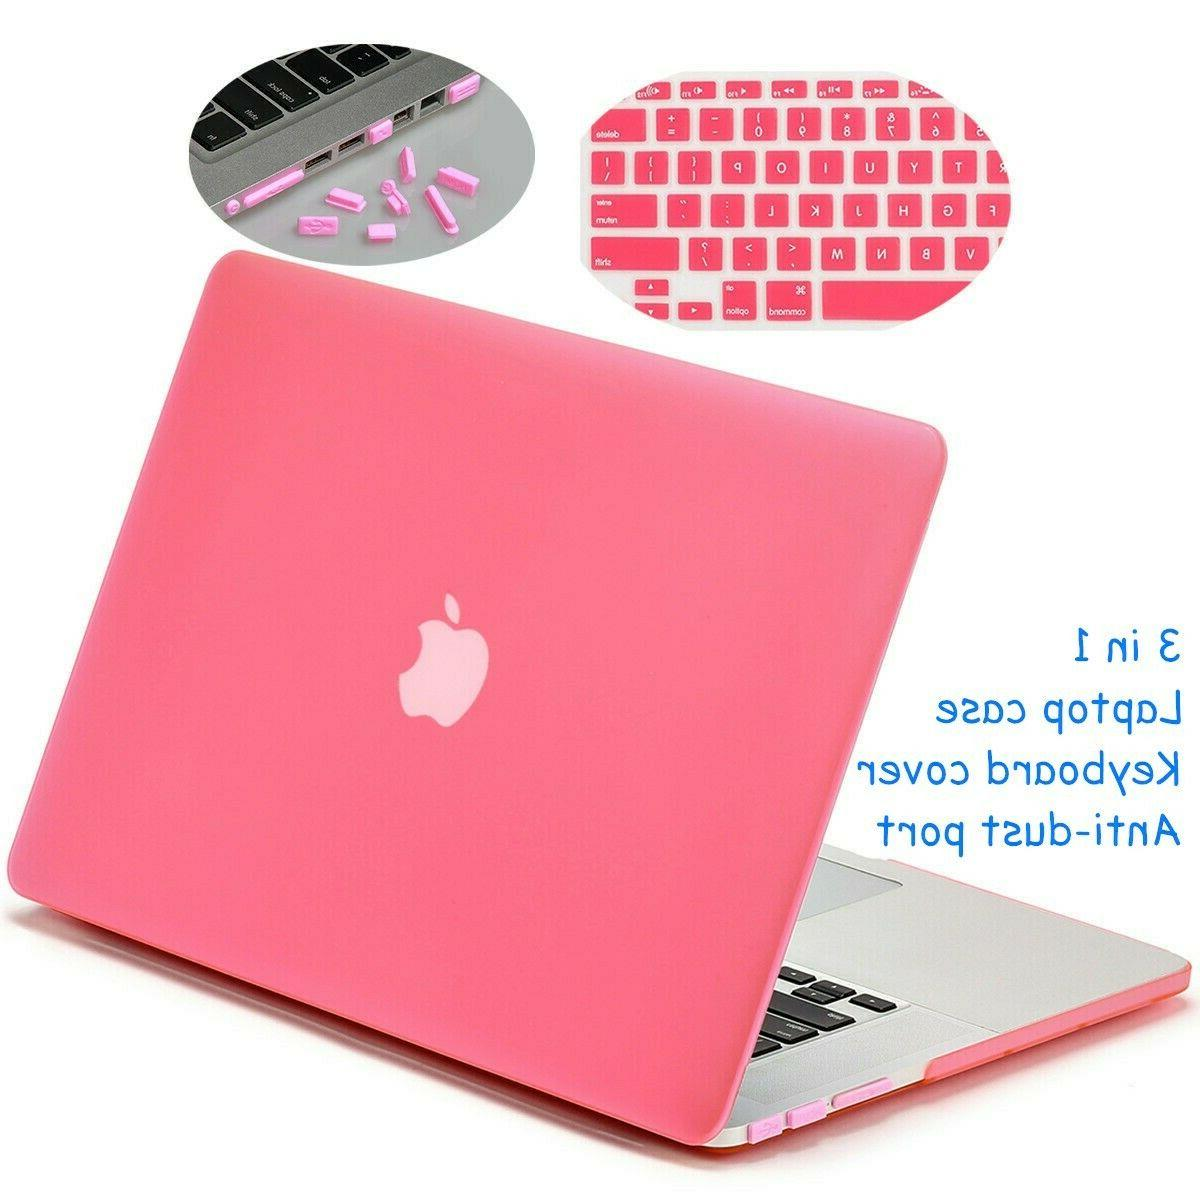 rubberized plastic hard shell case with keyboard